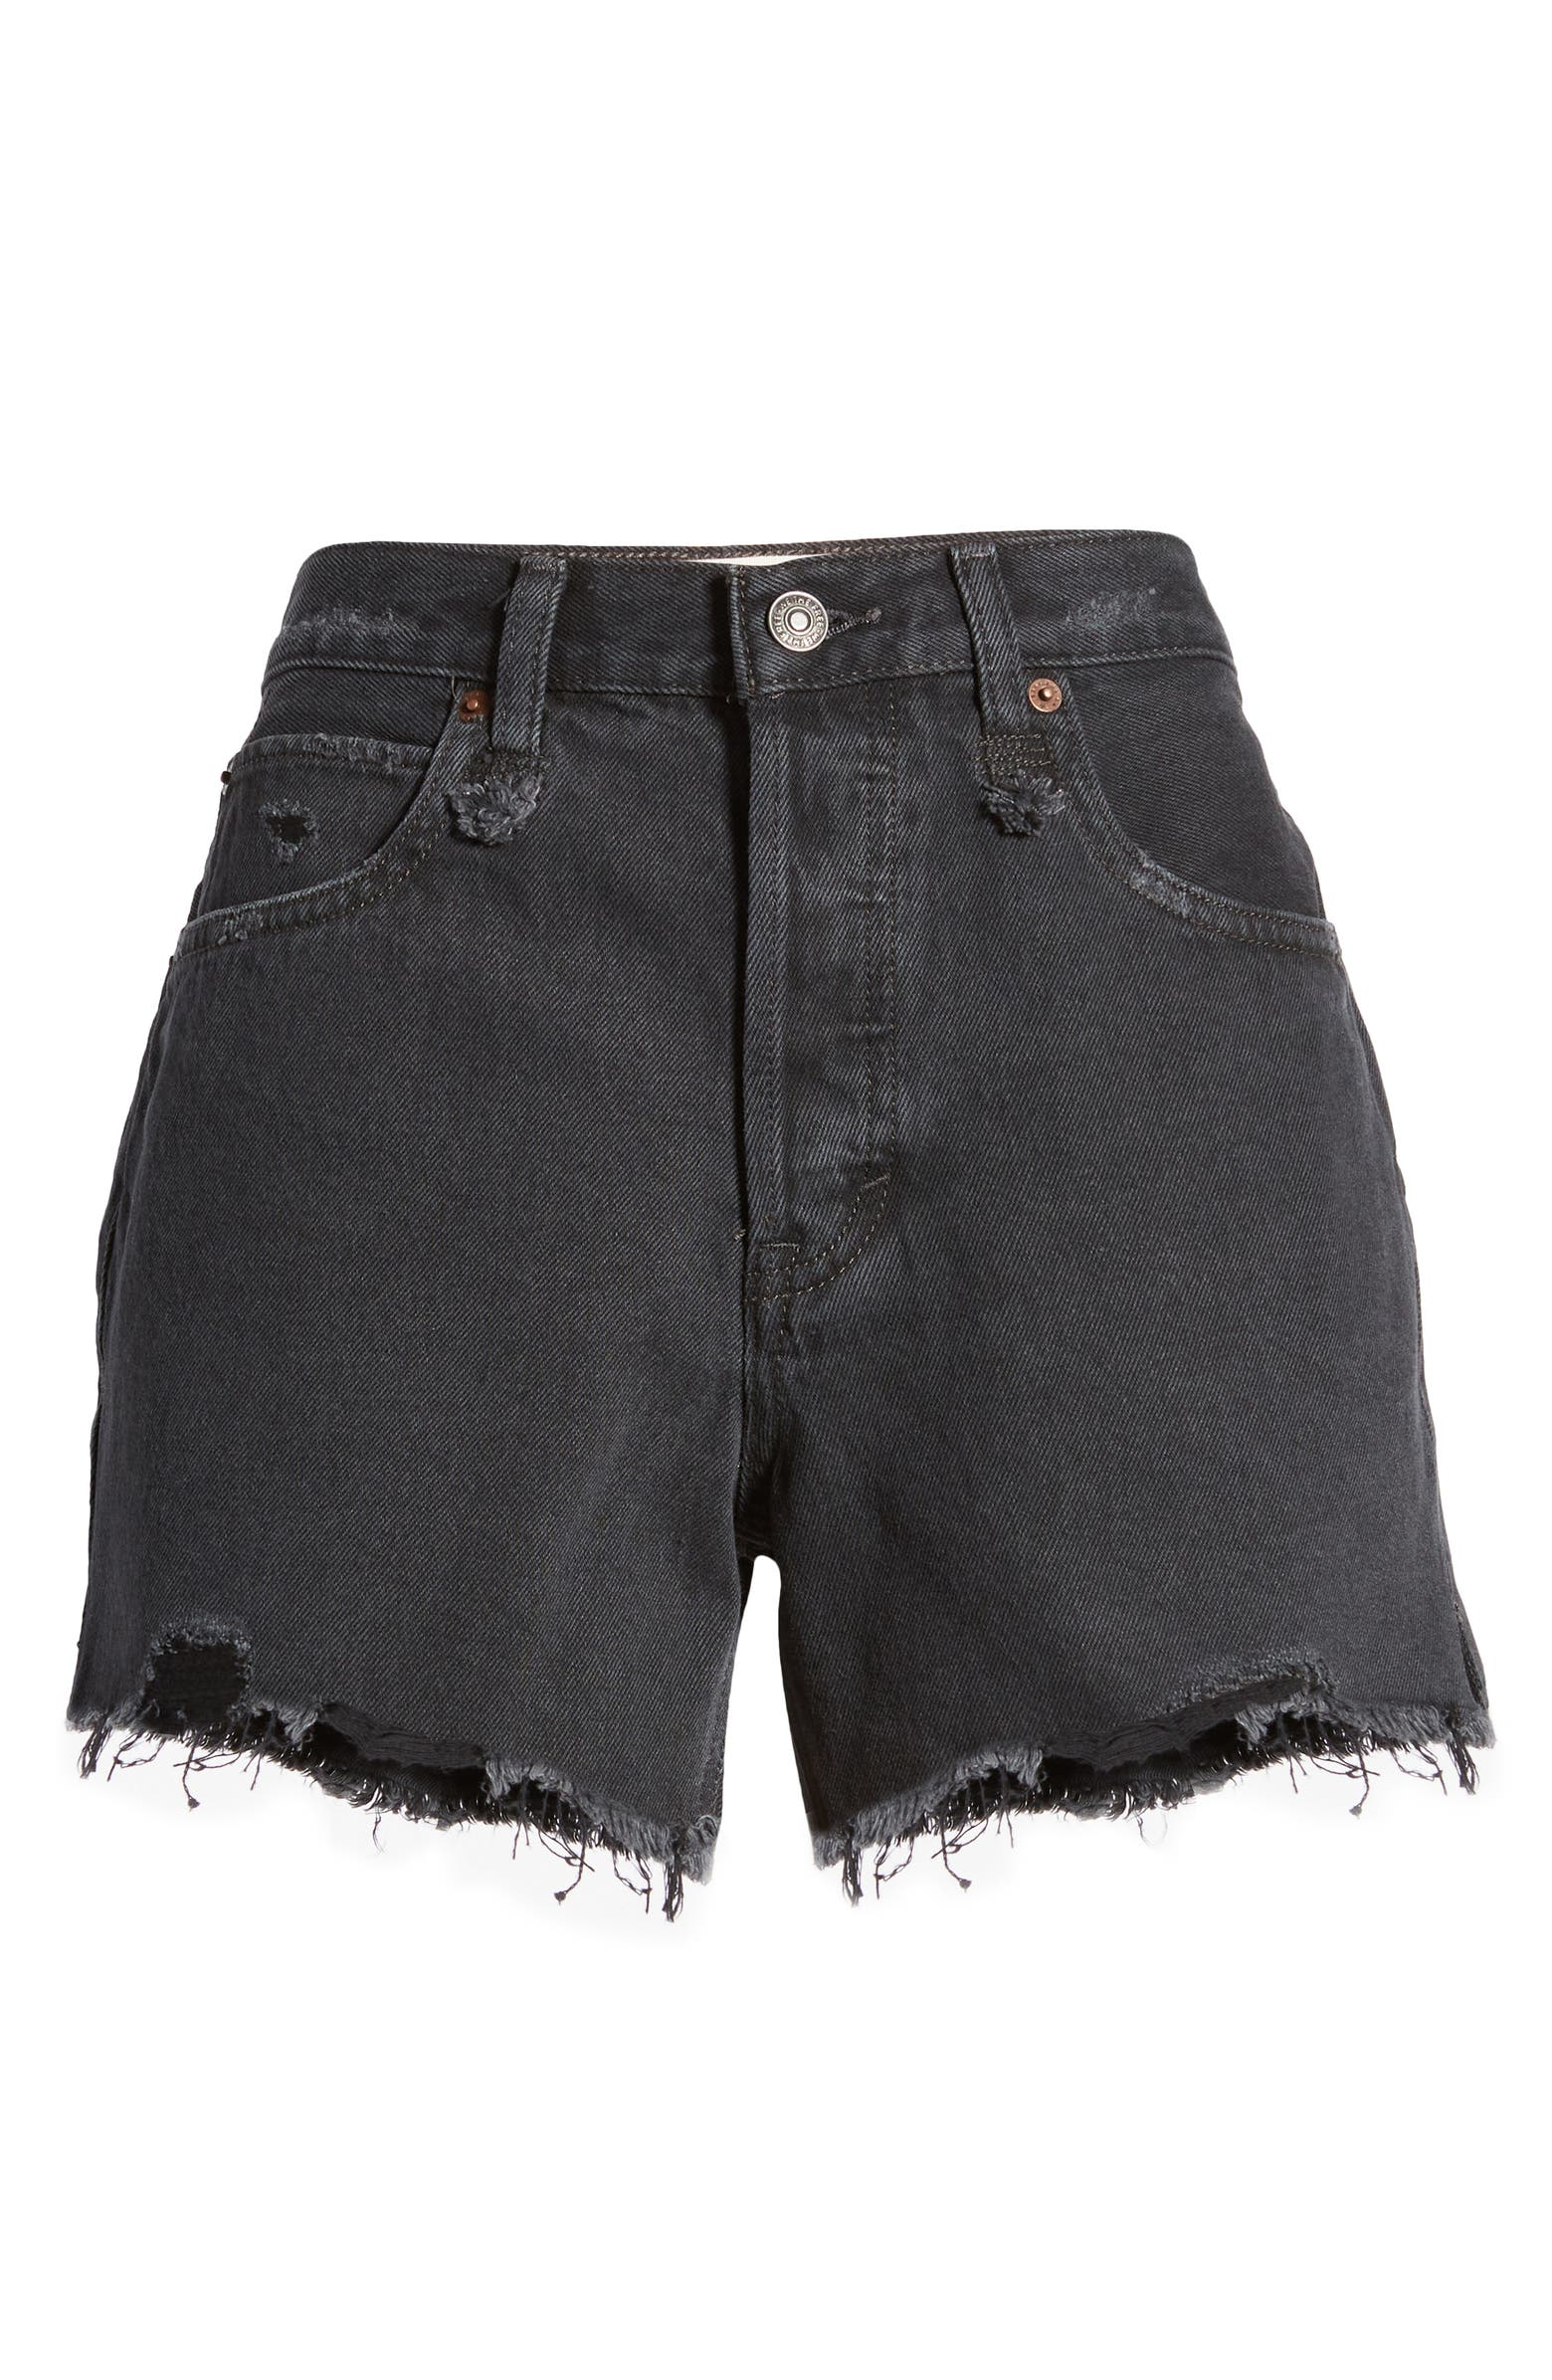 FREE PEOPLE MAKAI CUT OFF SHORTS IN WASHED BLACK